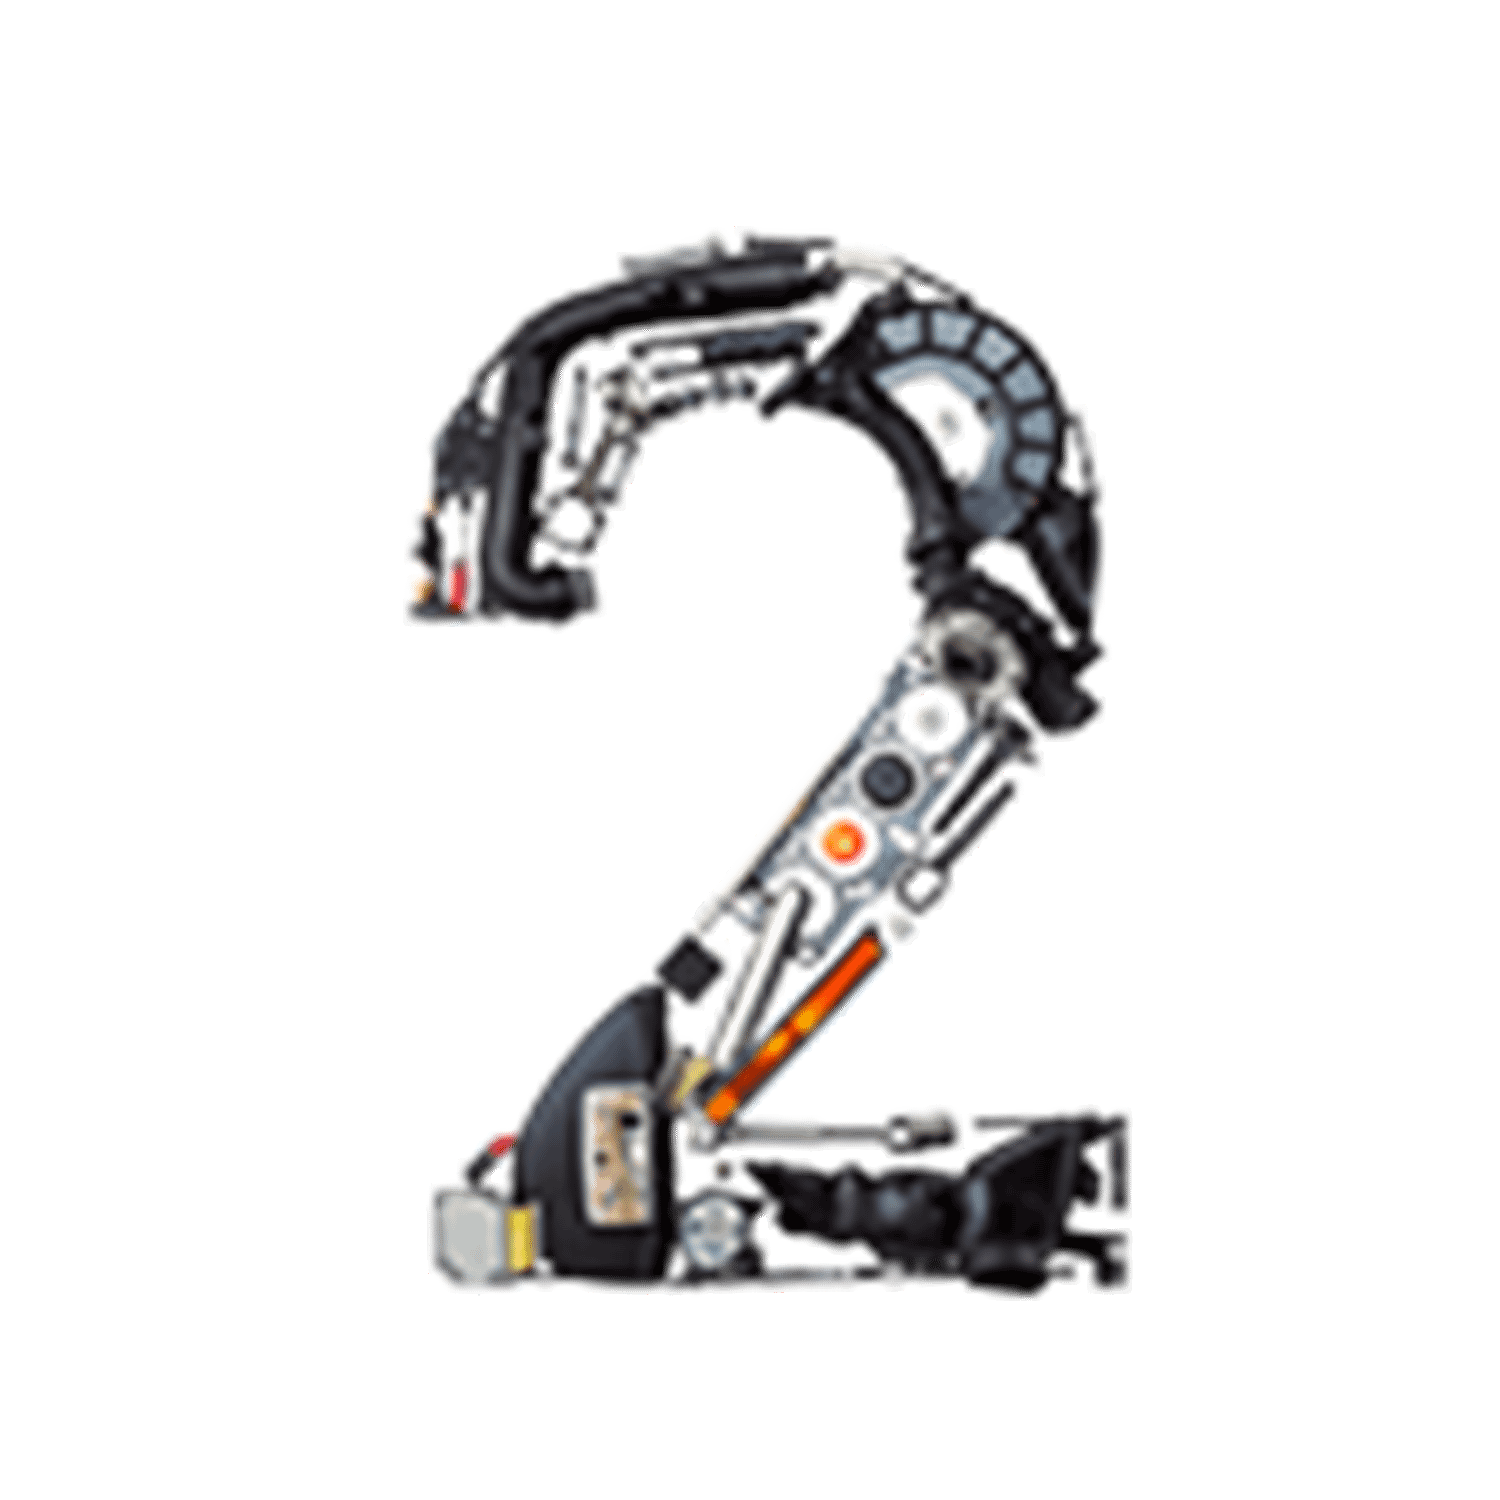 Number 2 made from car parts